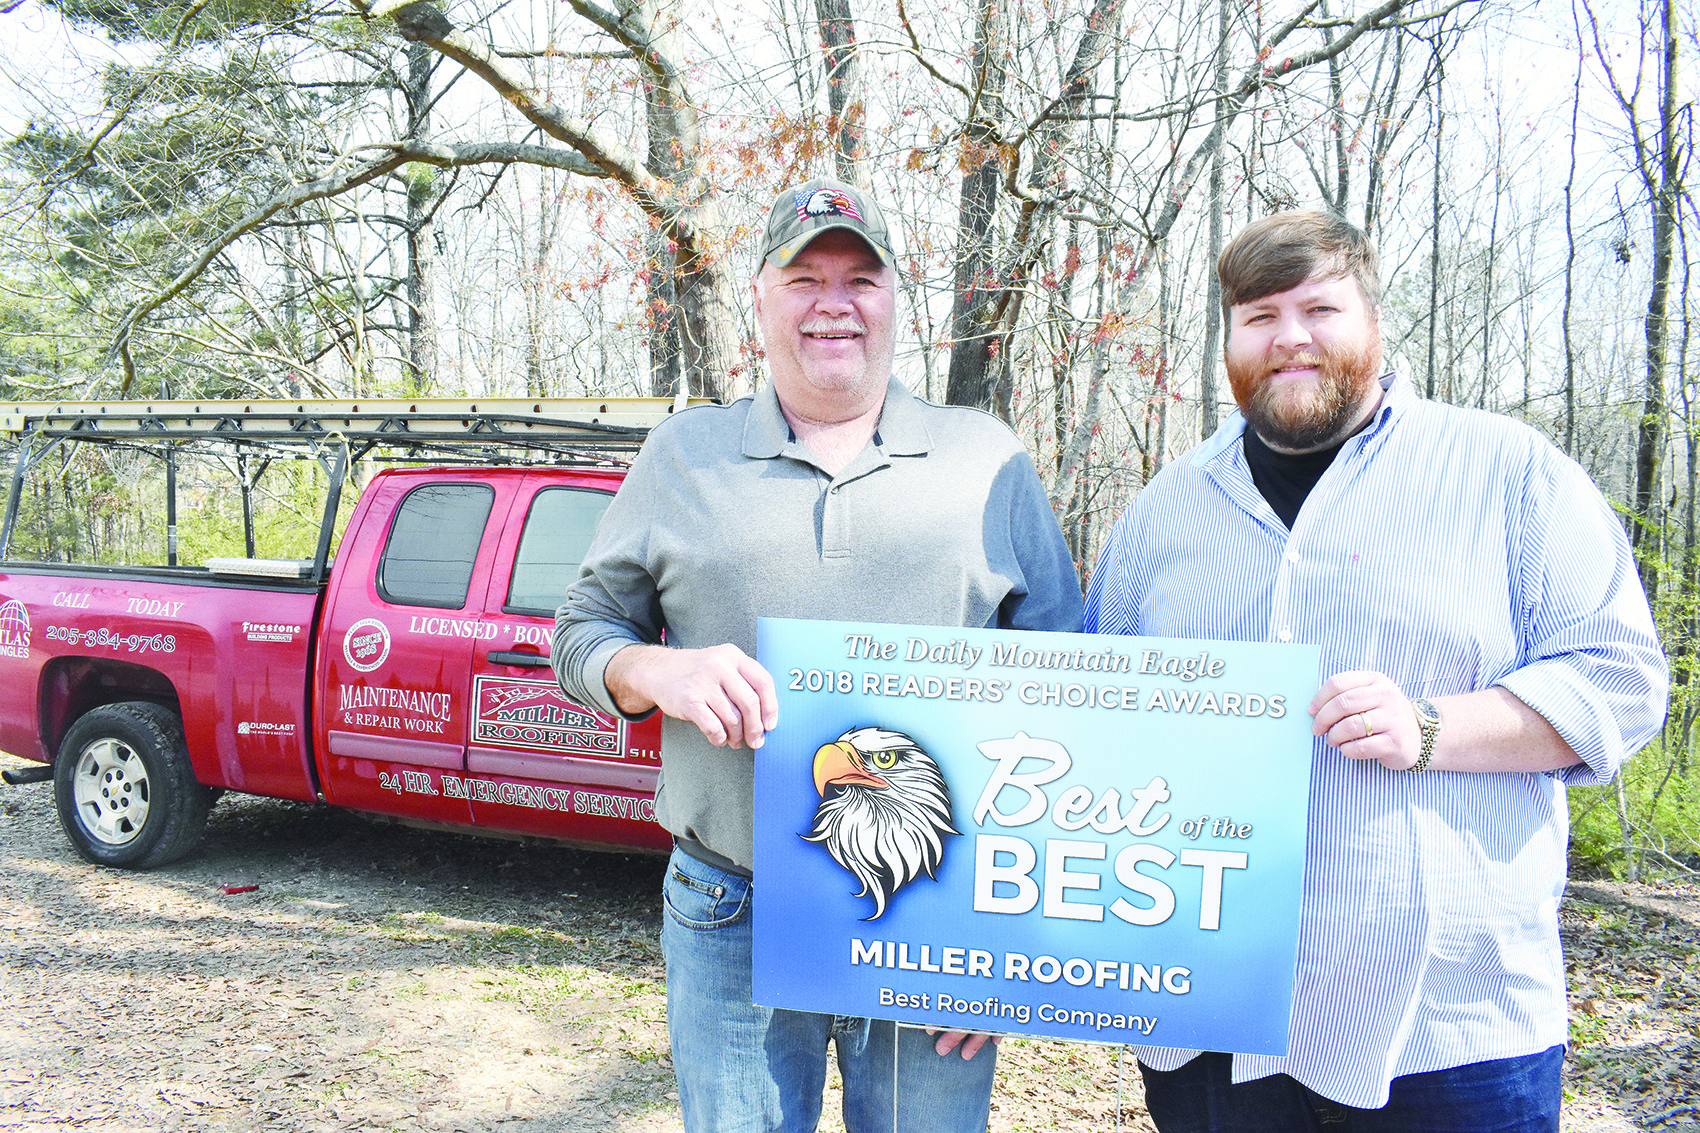 Miller Roofing Moves Back Home In 50th Year Daily Mountain Eagle